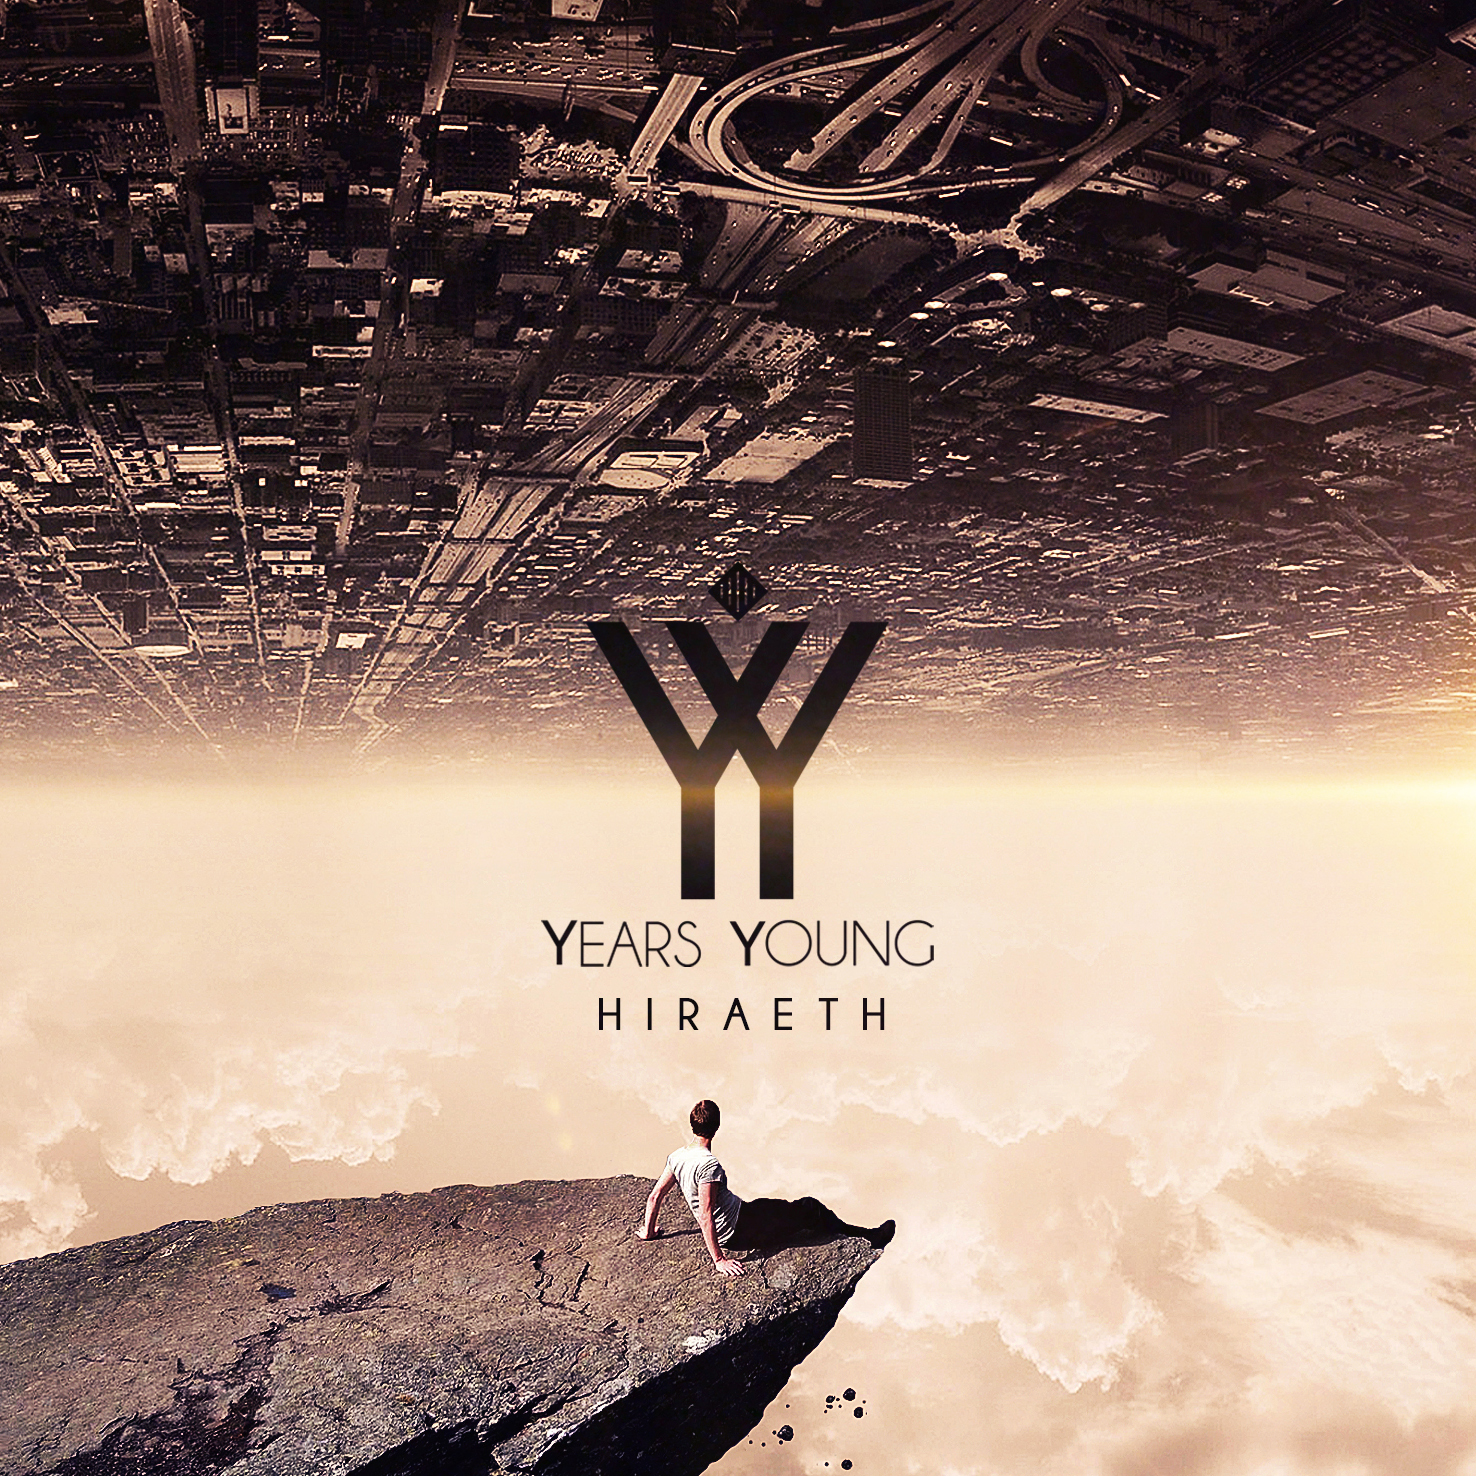 years young